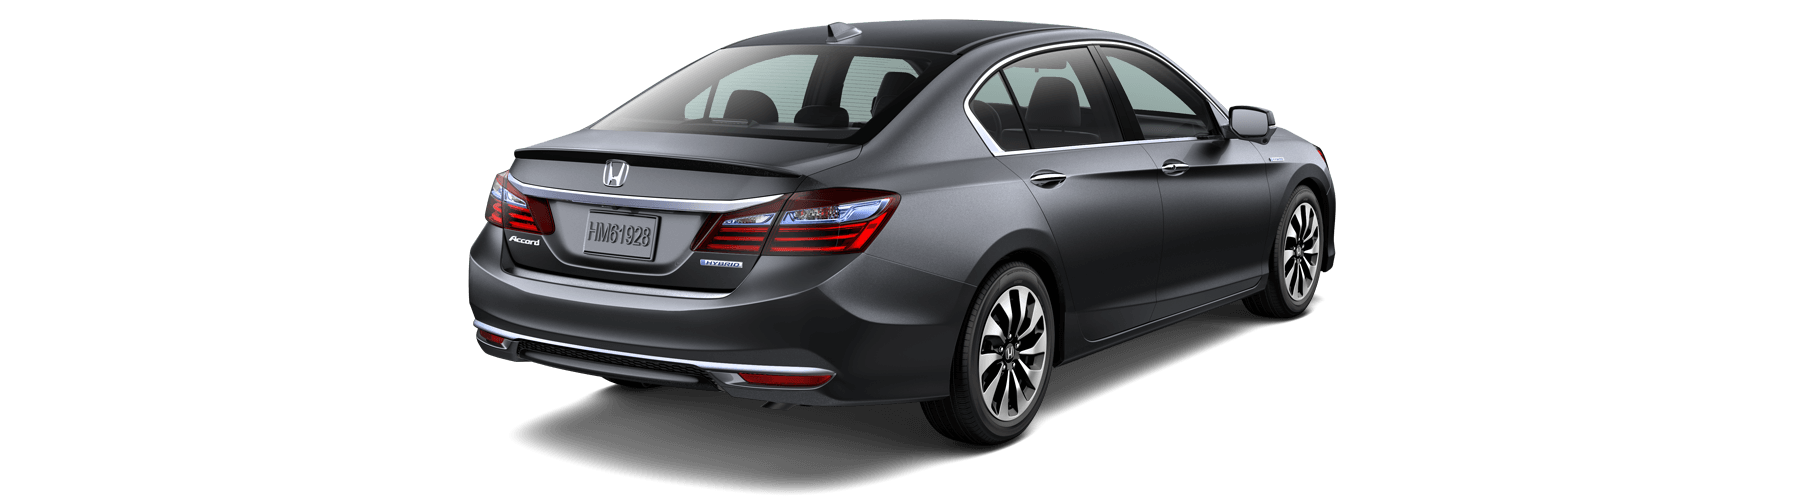 2017 Honda Accord Hybrid Rear Angle